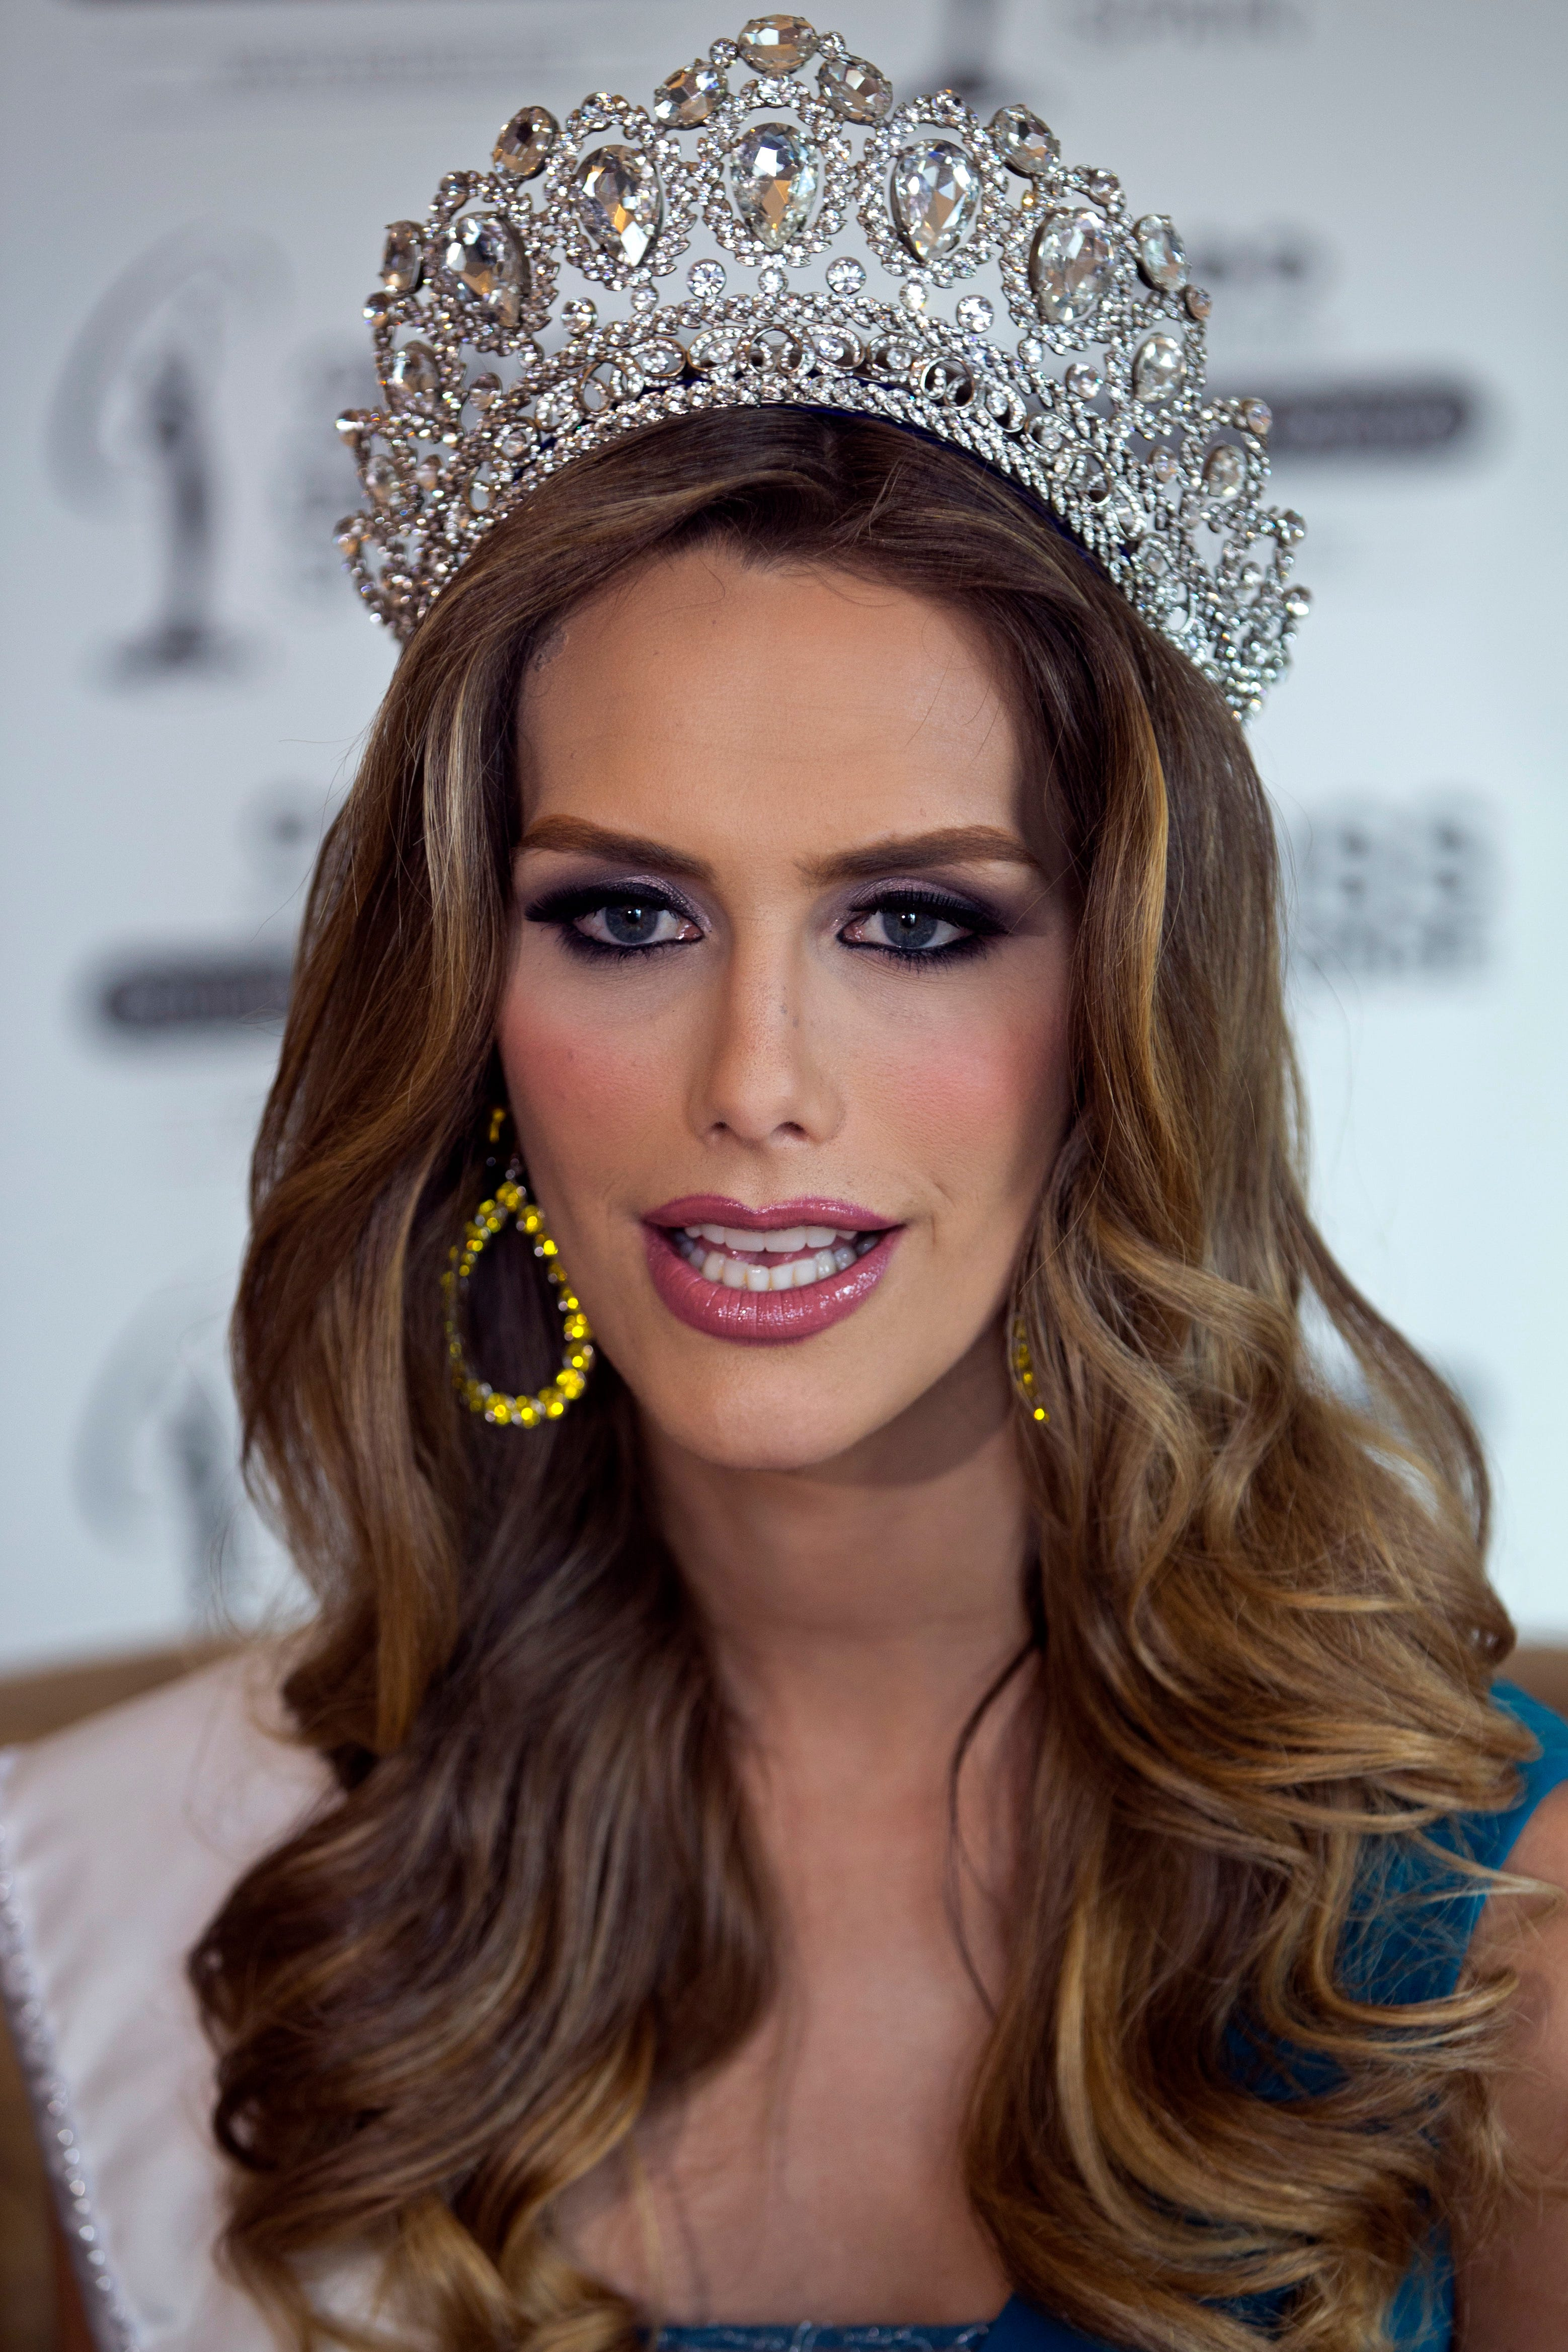 Ver miss universo 2019 completo online dating